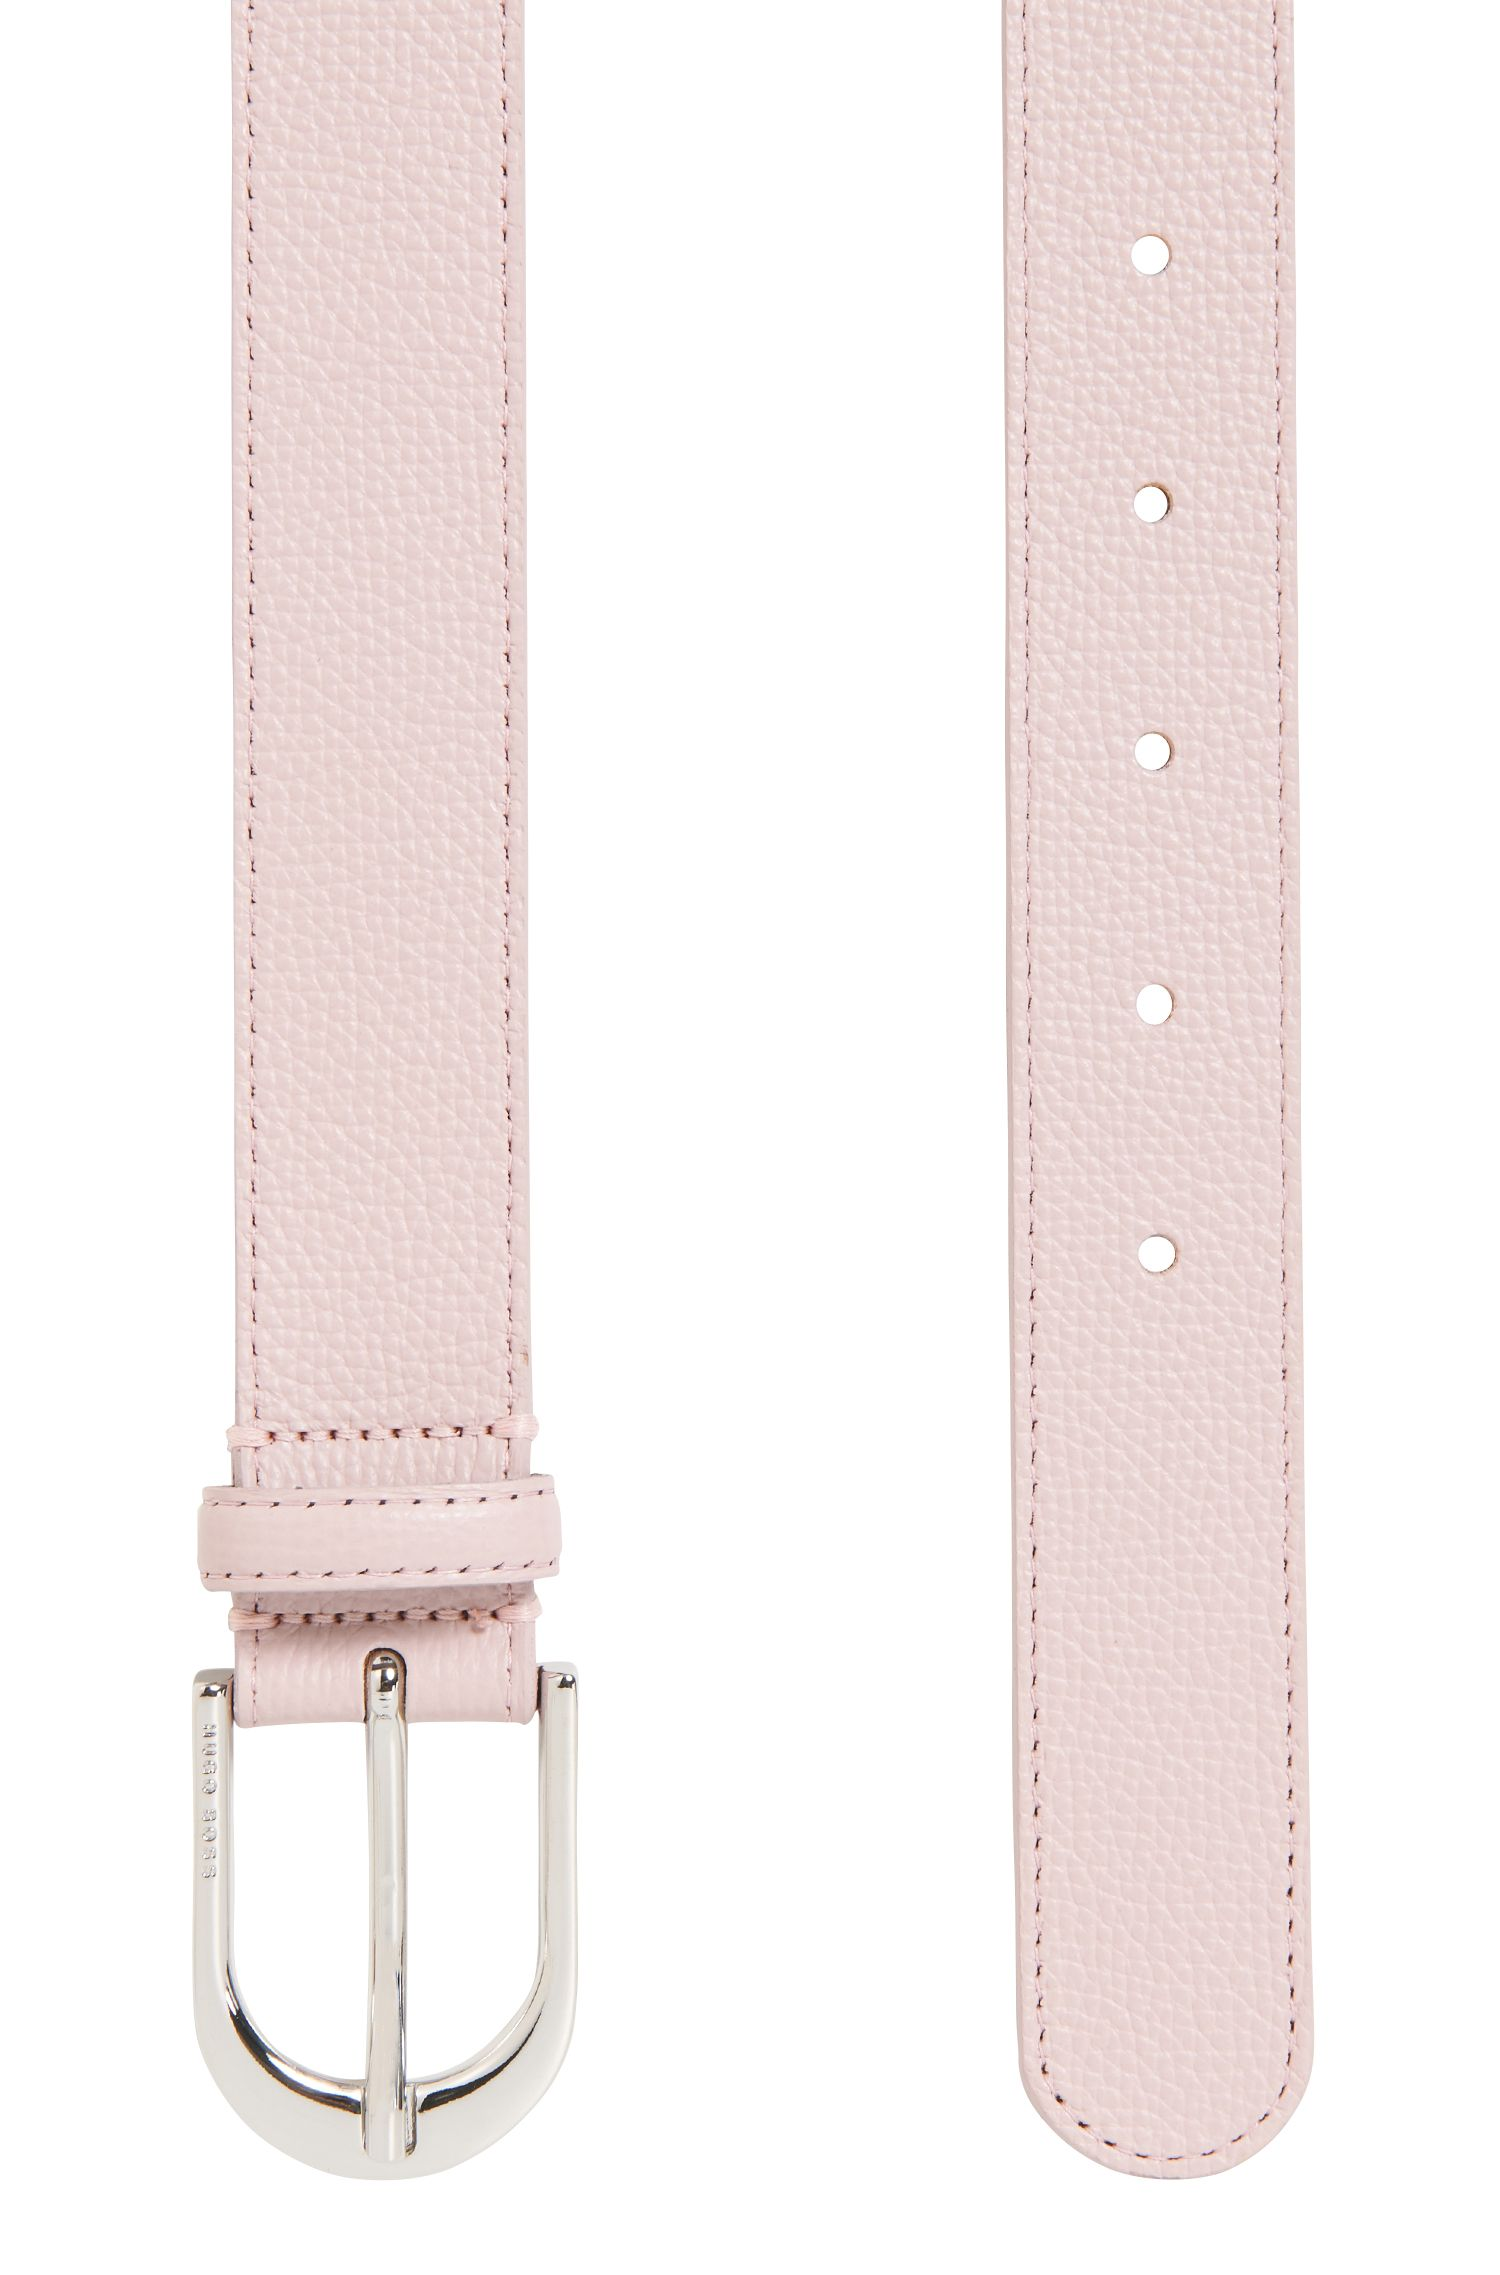 Italian-leather belt with polished silver-effect buckle, light pink